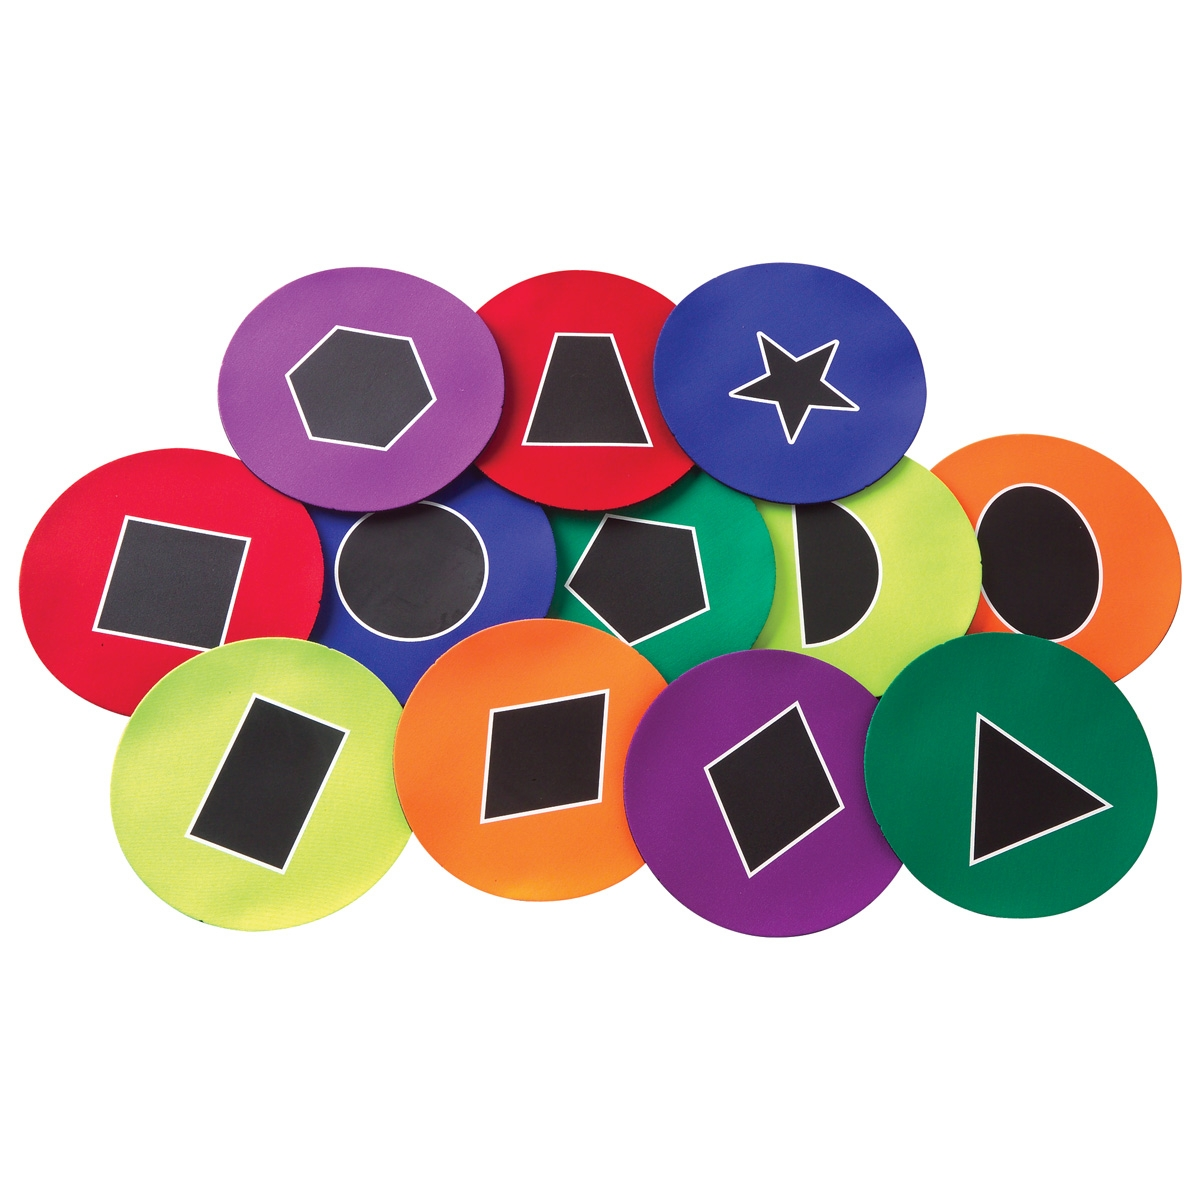 geometric shapes poly spot set